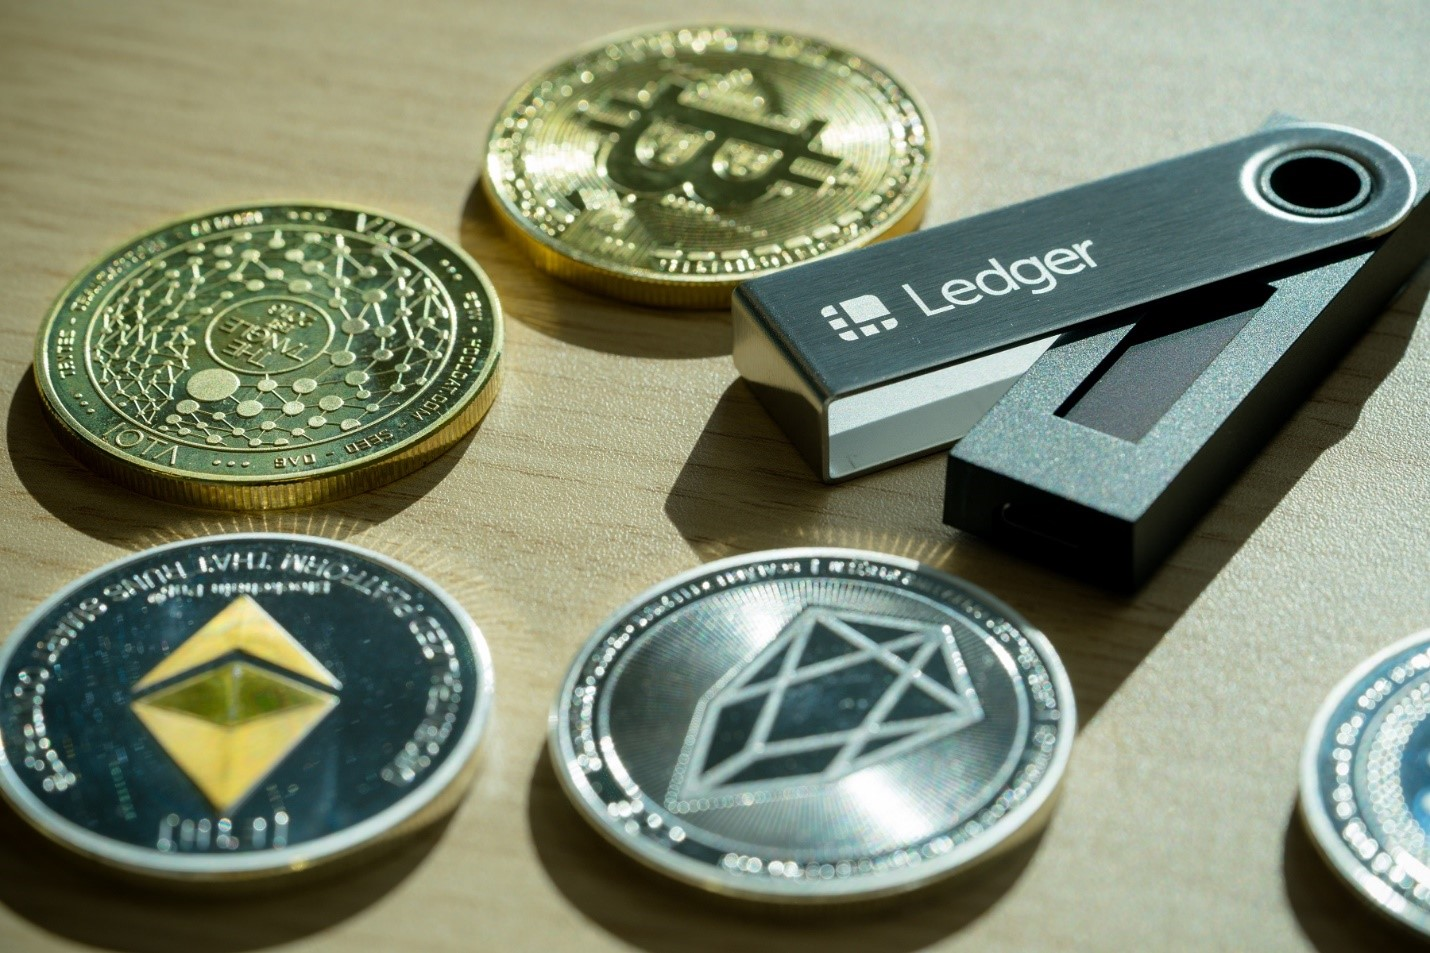 Hardware Wallet - Best way to store Bitcoins safely